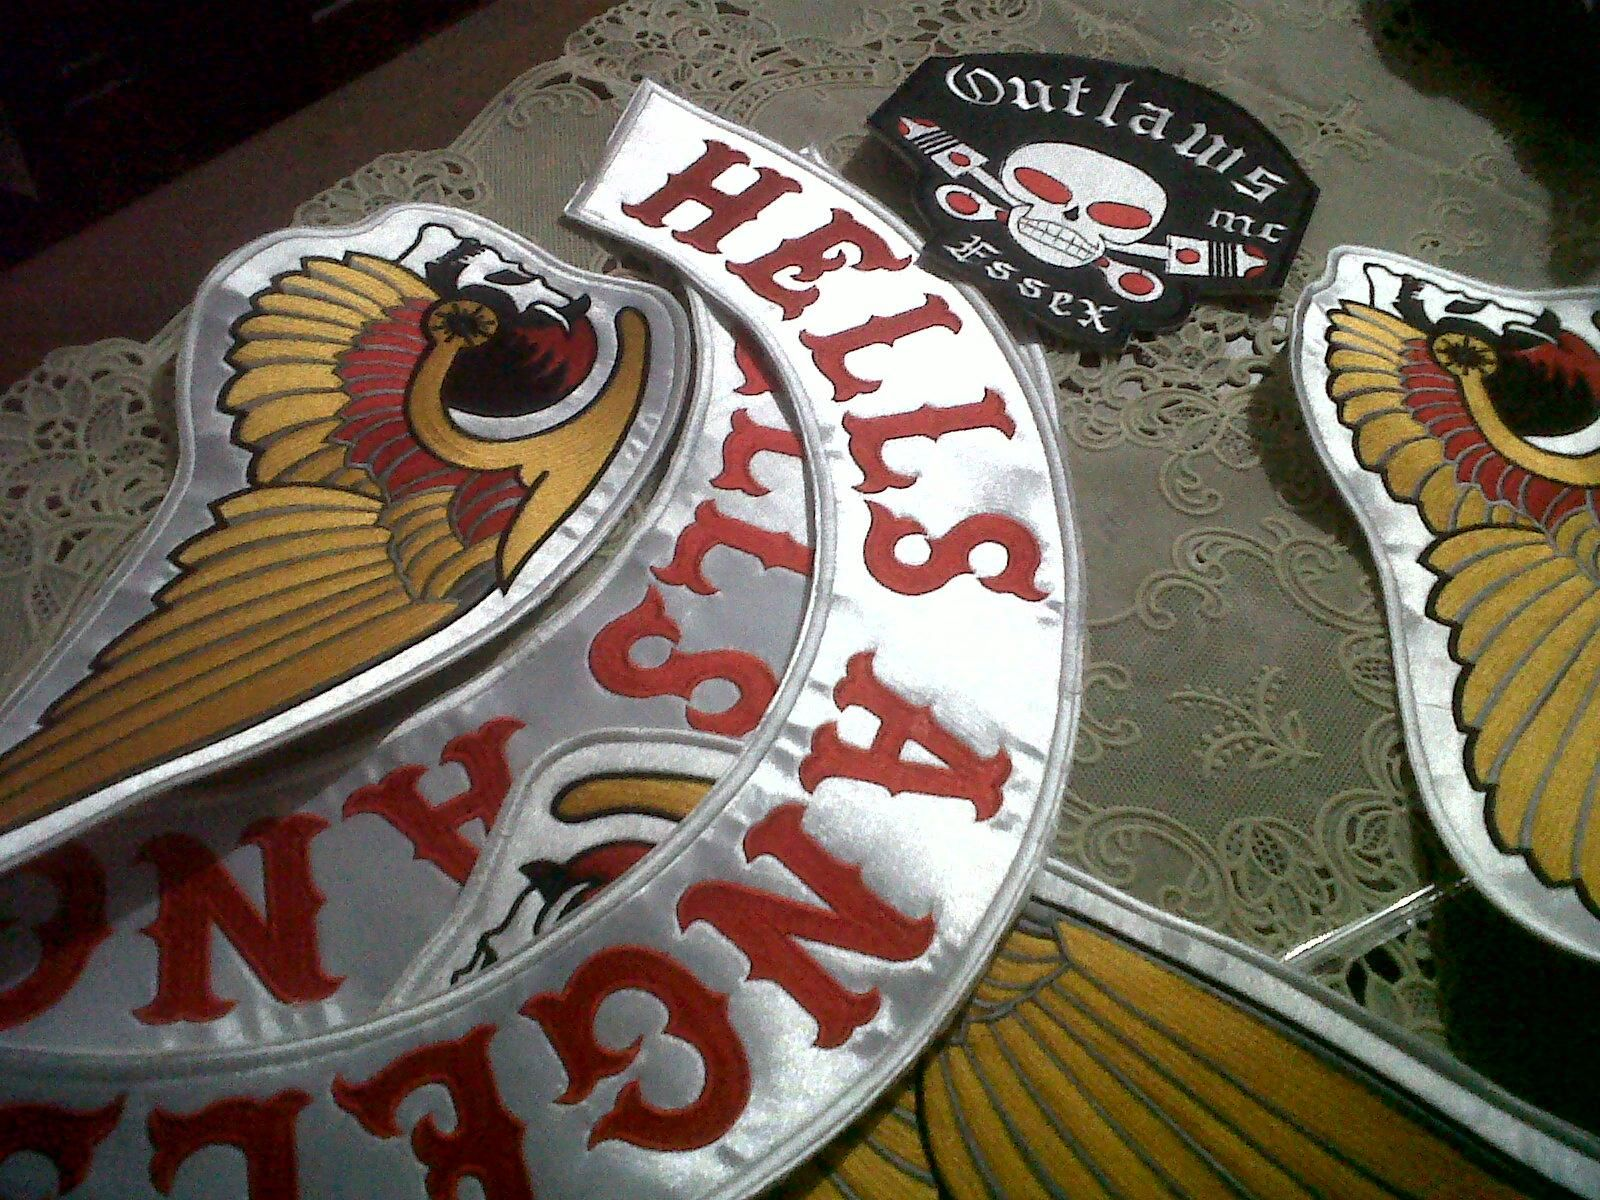 Image detail for -Motorcycle Club Hells Angels PATCH - Ad